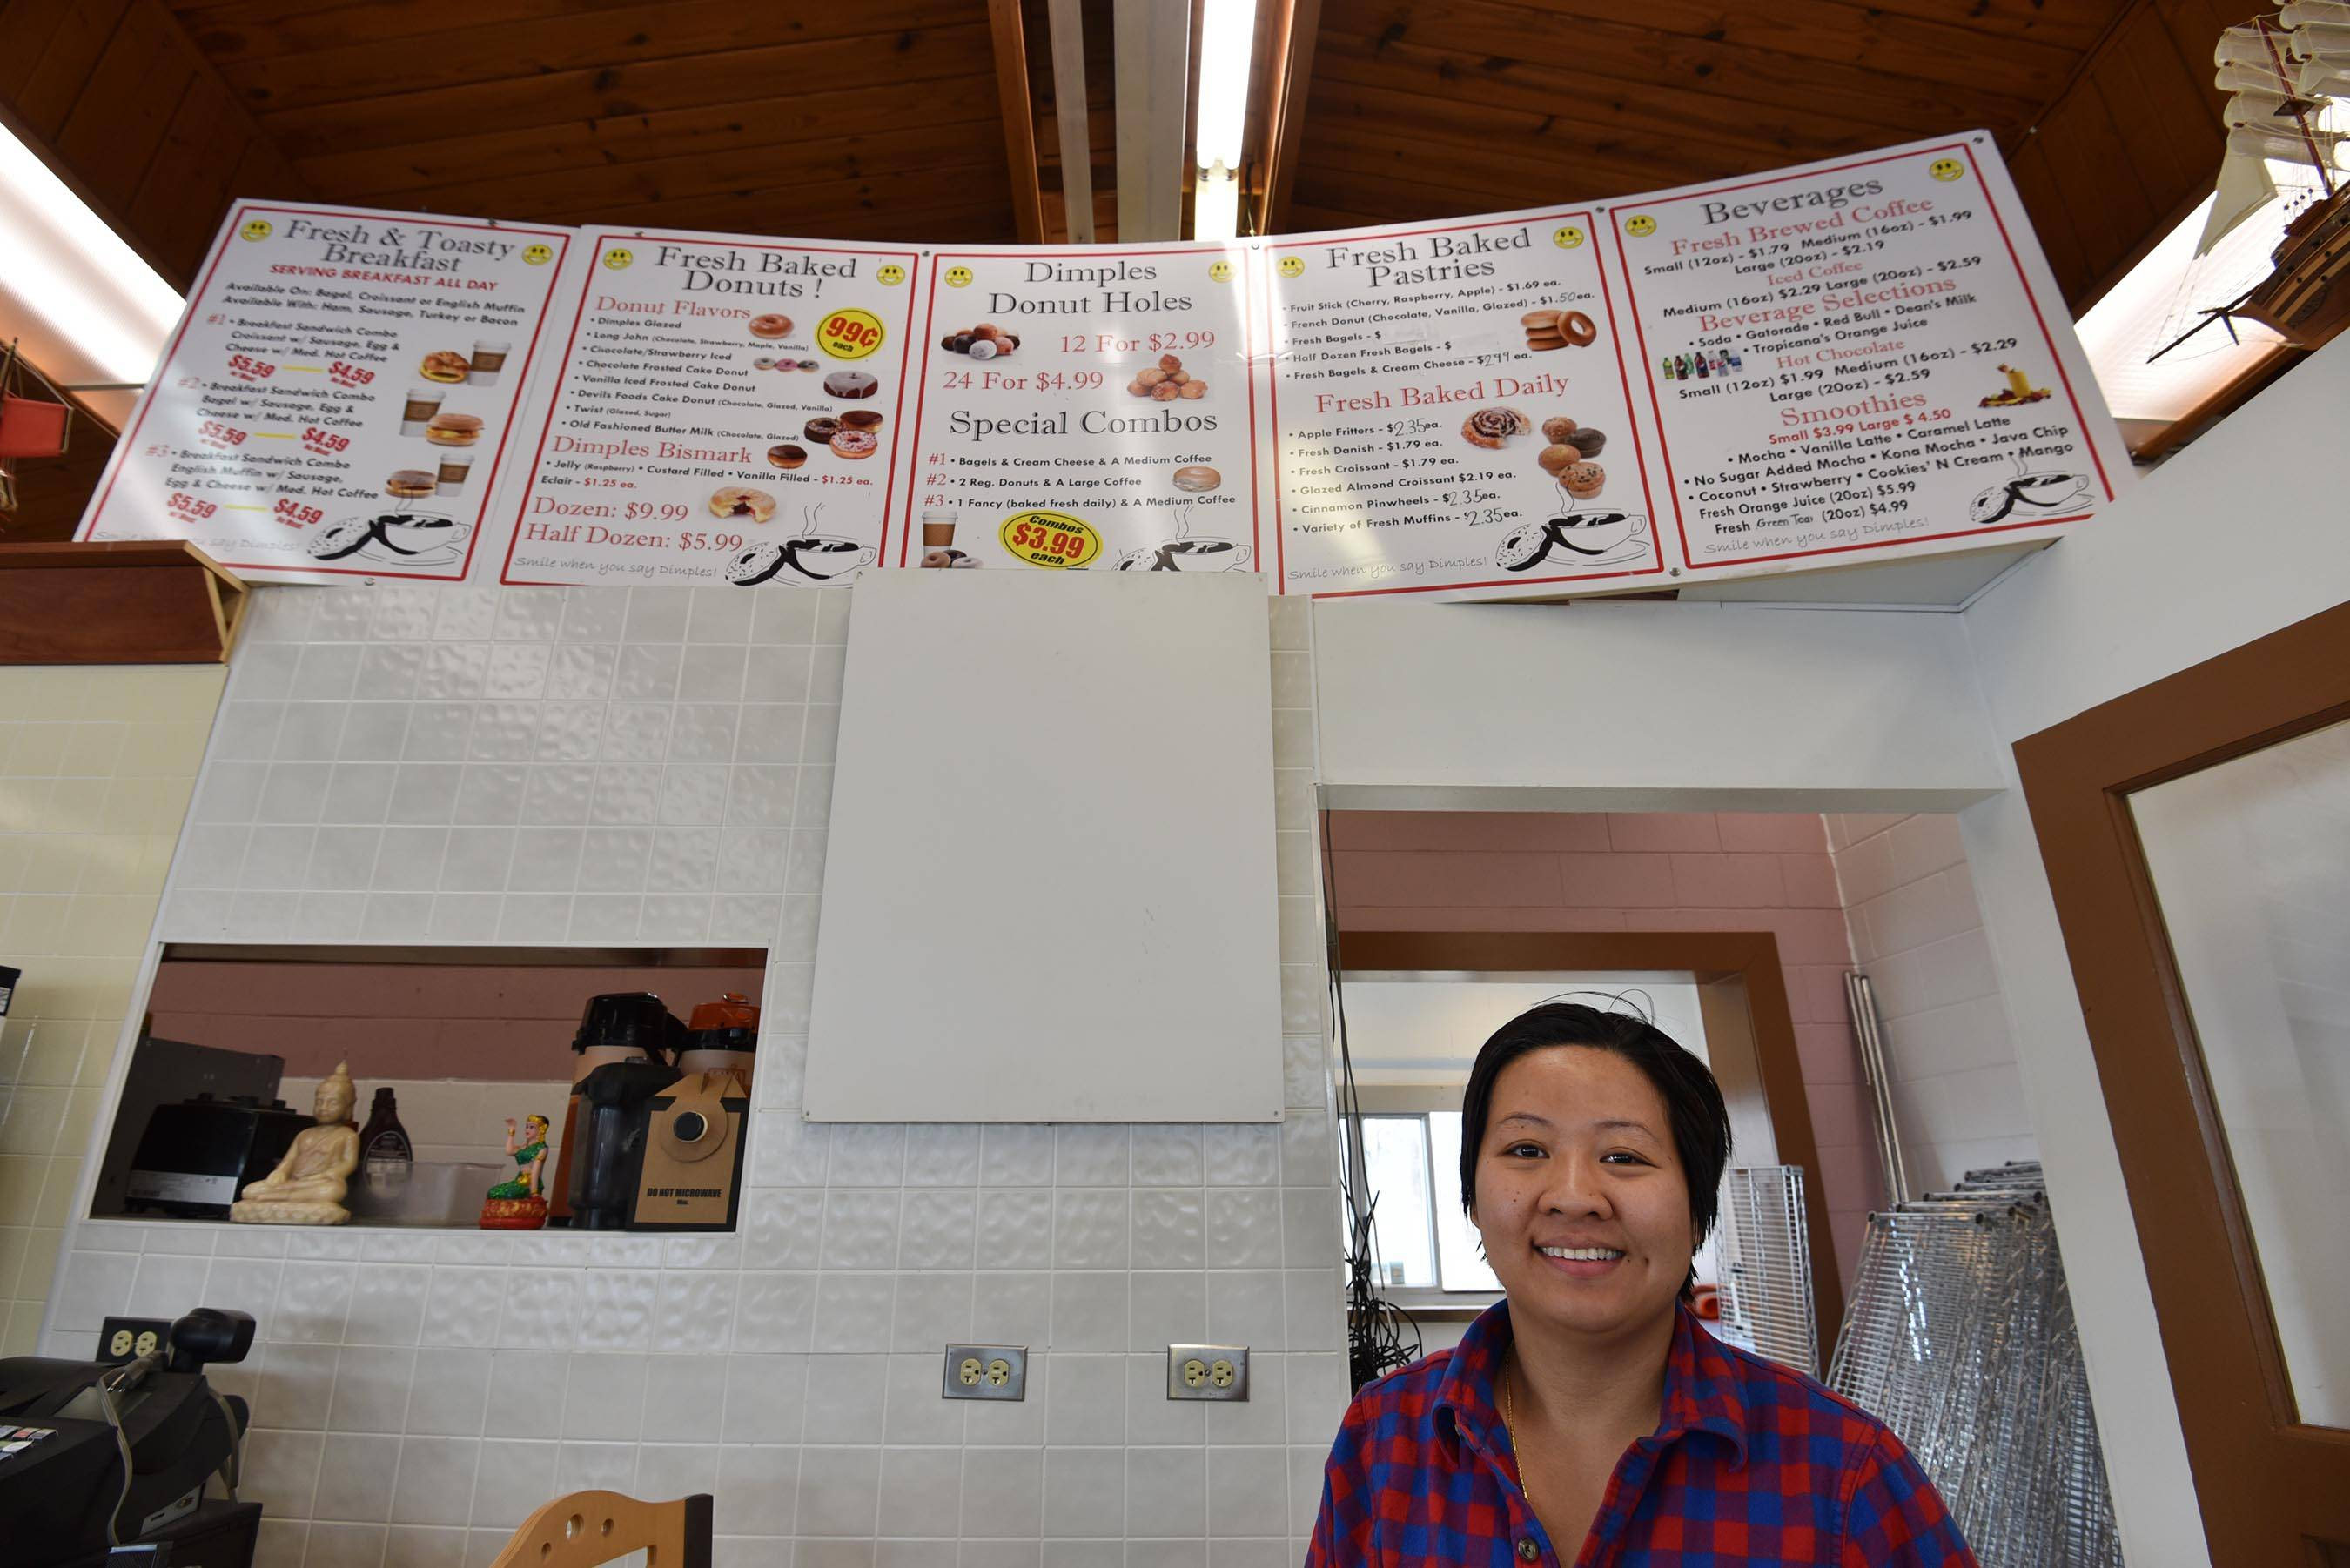 Sovannary Vong hopes to open Dimples Donuts at 1315 Dundee Ave. in Elgin at the end of the month. She also owns locations in Batavia and St. Charles.